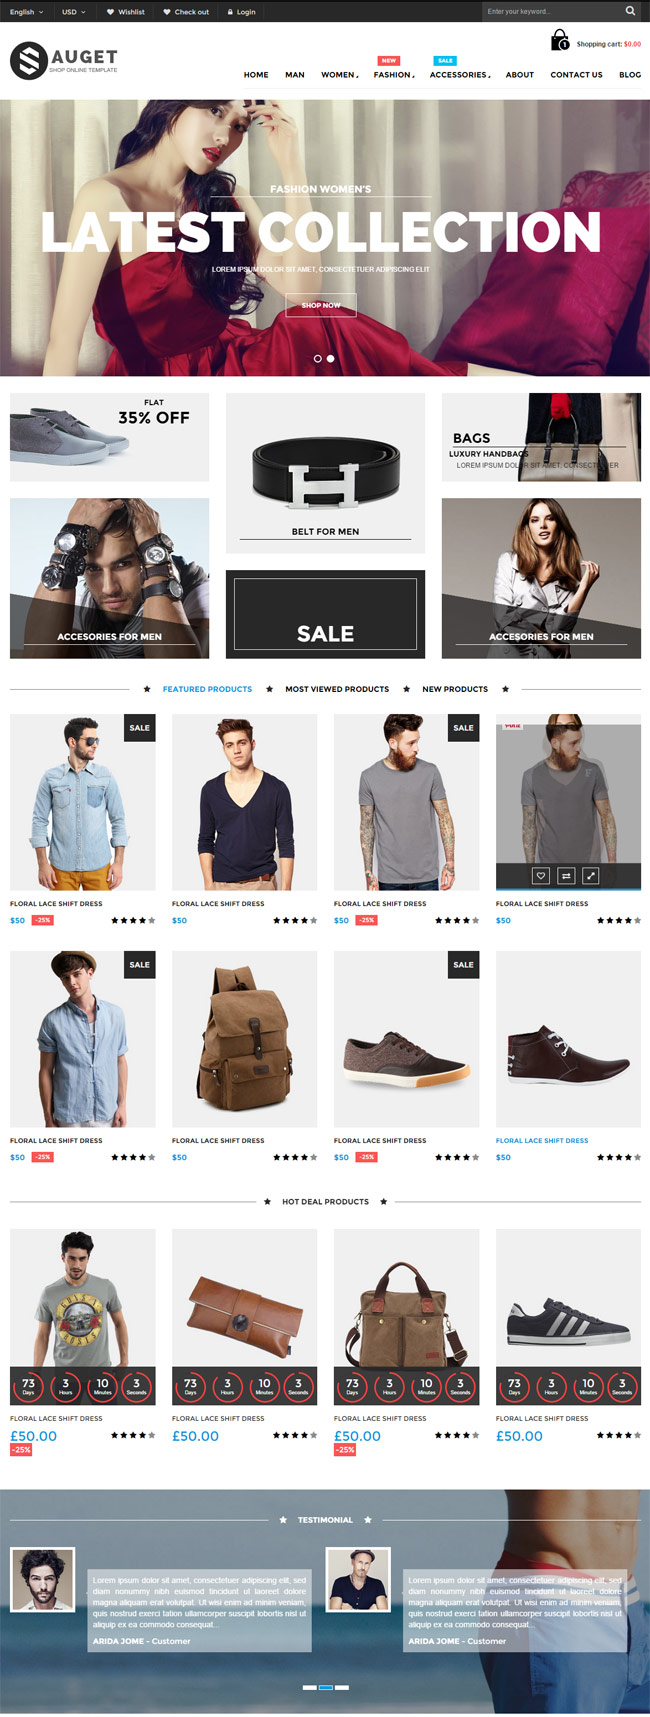 Sauget-eCommerce-HTML-Template